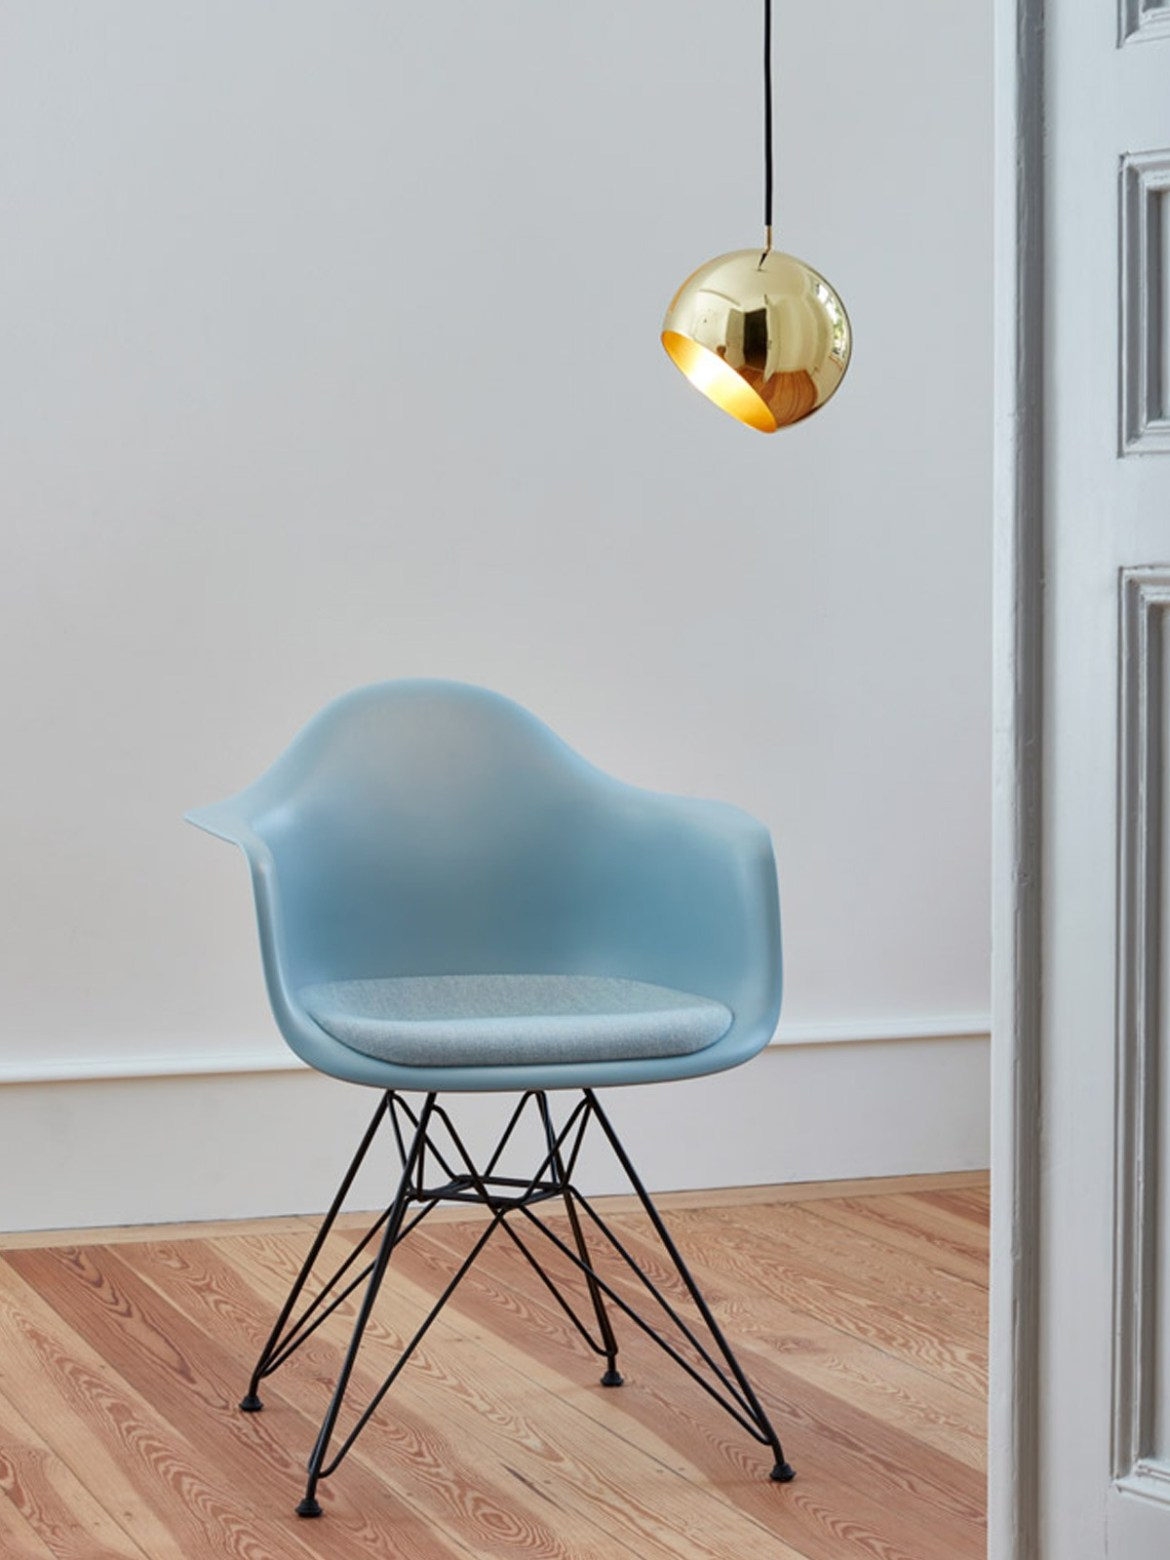 DesignOrt Blog: Tilt Globe Brass aus massivem Messing